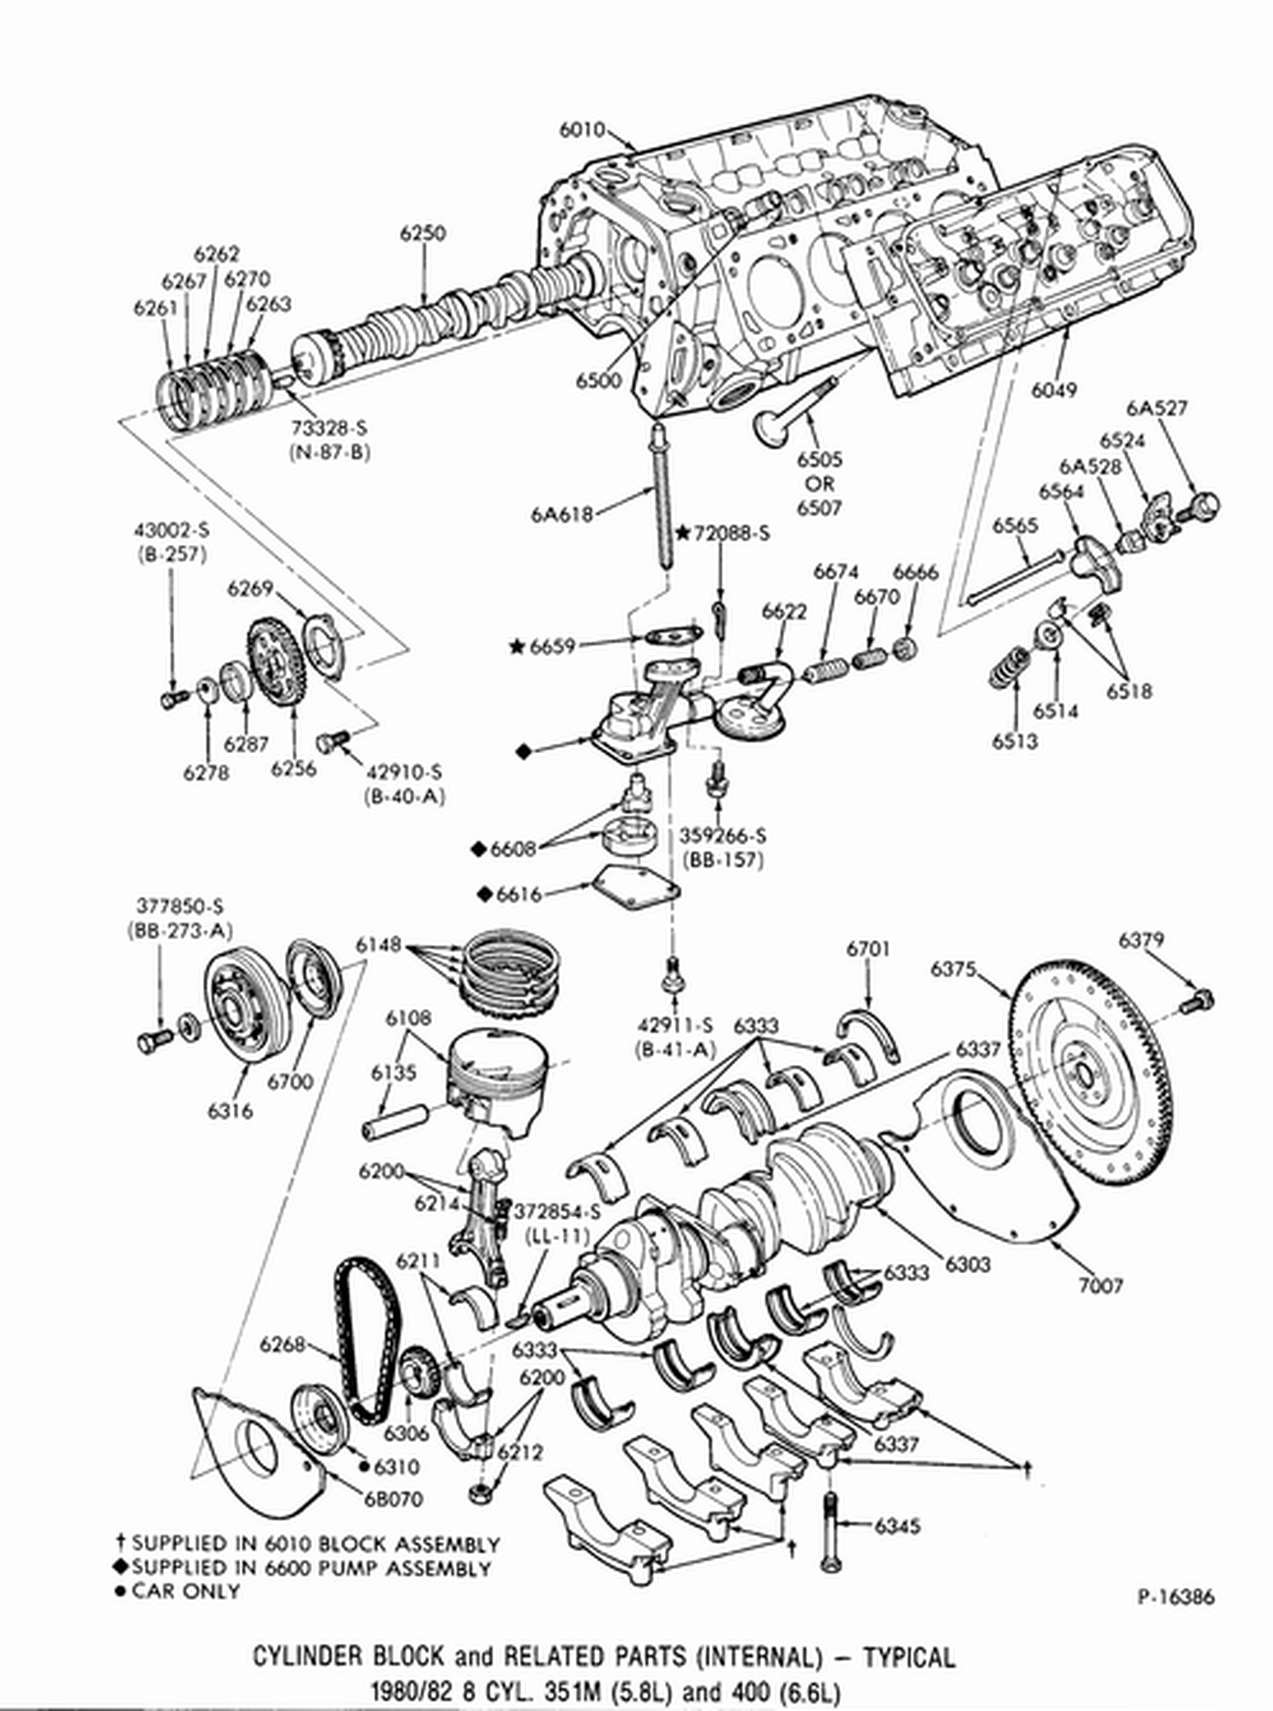 351m And 400 Garys Garagemahal The Bullnose Bible 83 F100 Wiring Diagram Help Ford Truck Fords 335 Series Engines Use A Bit Different Oiling System Than Most Other Consequently Many Have Low Oil Pressure Especially At Idle